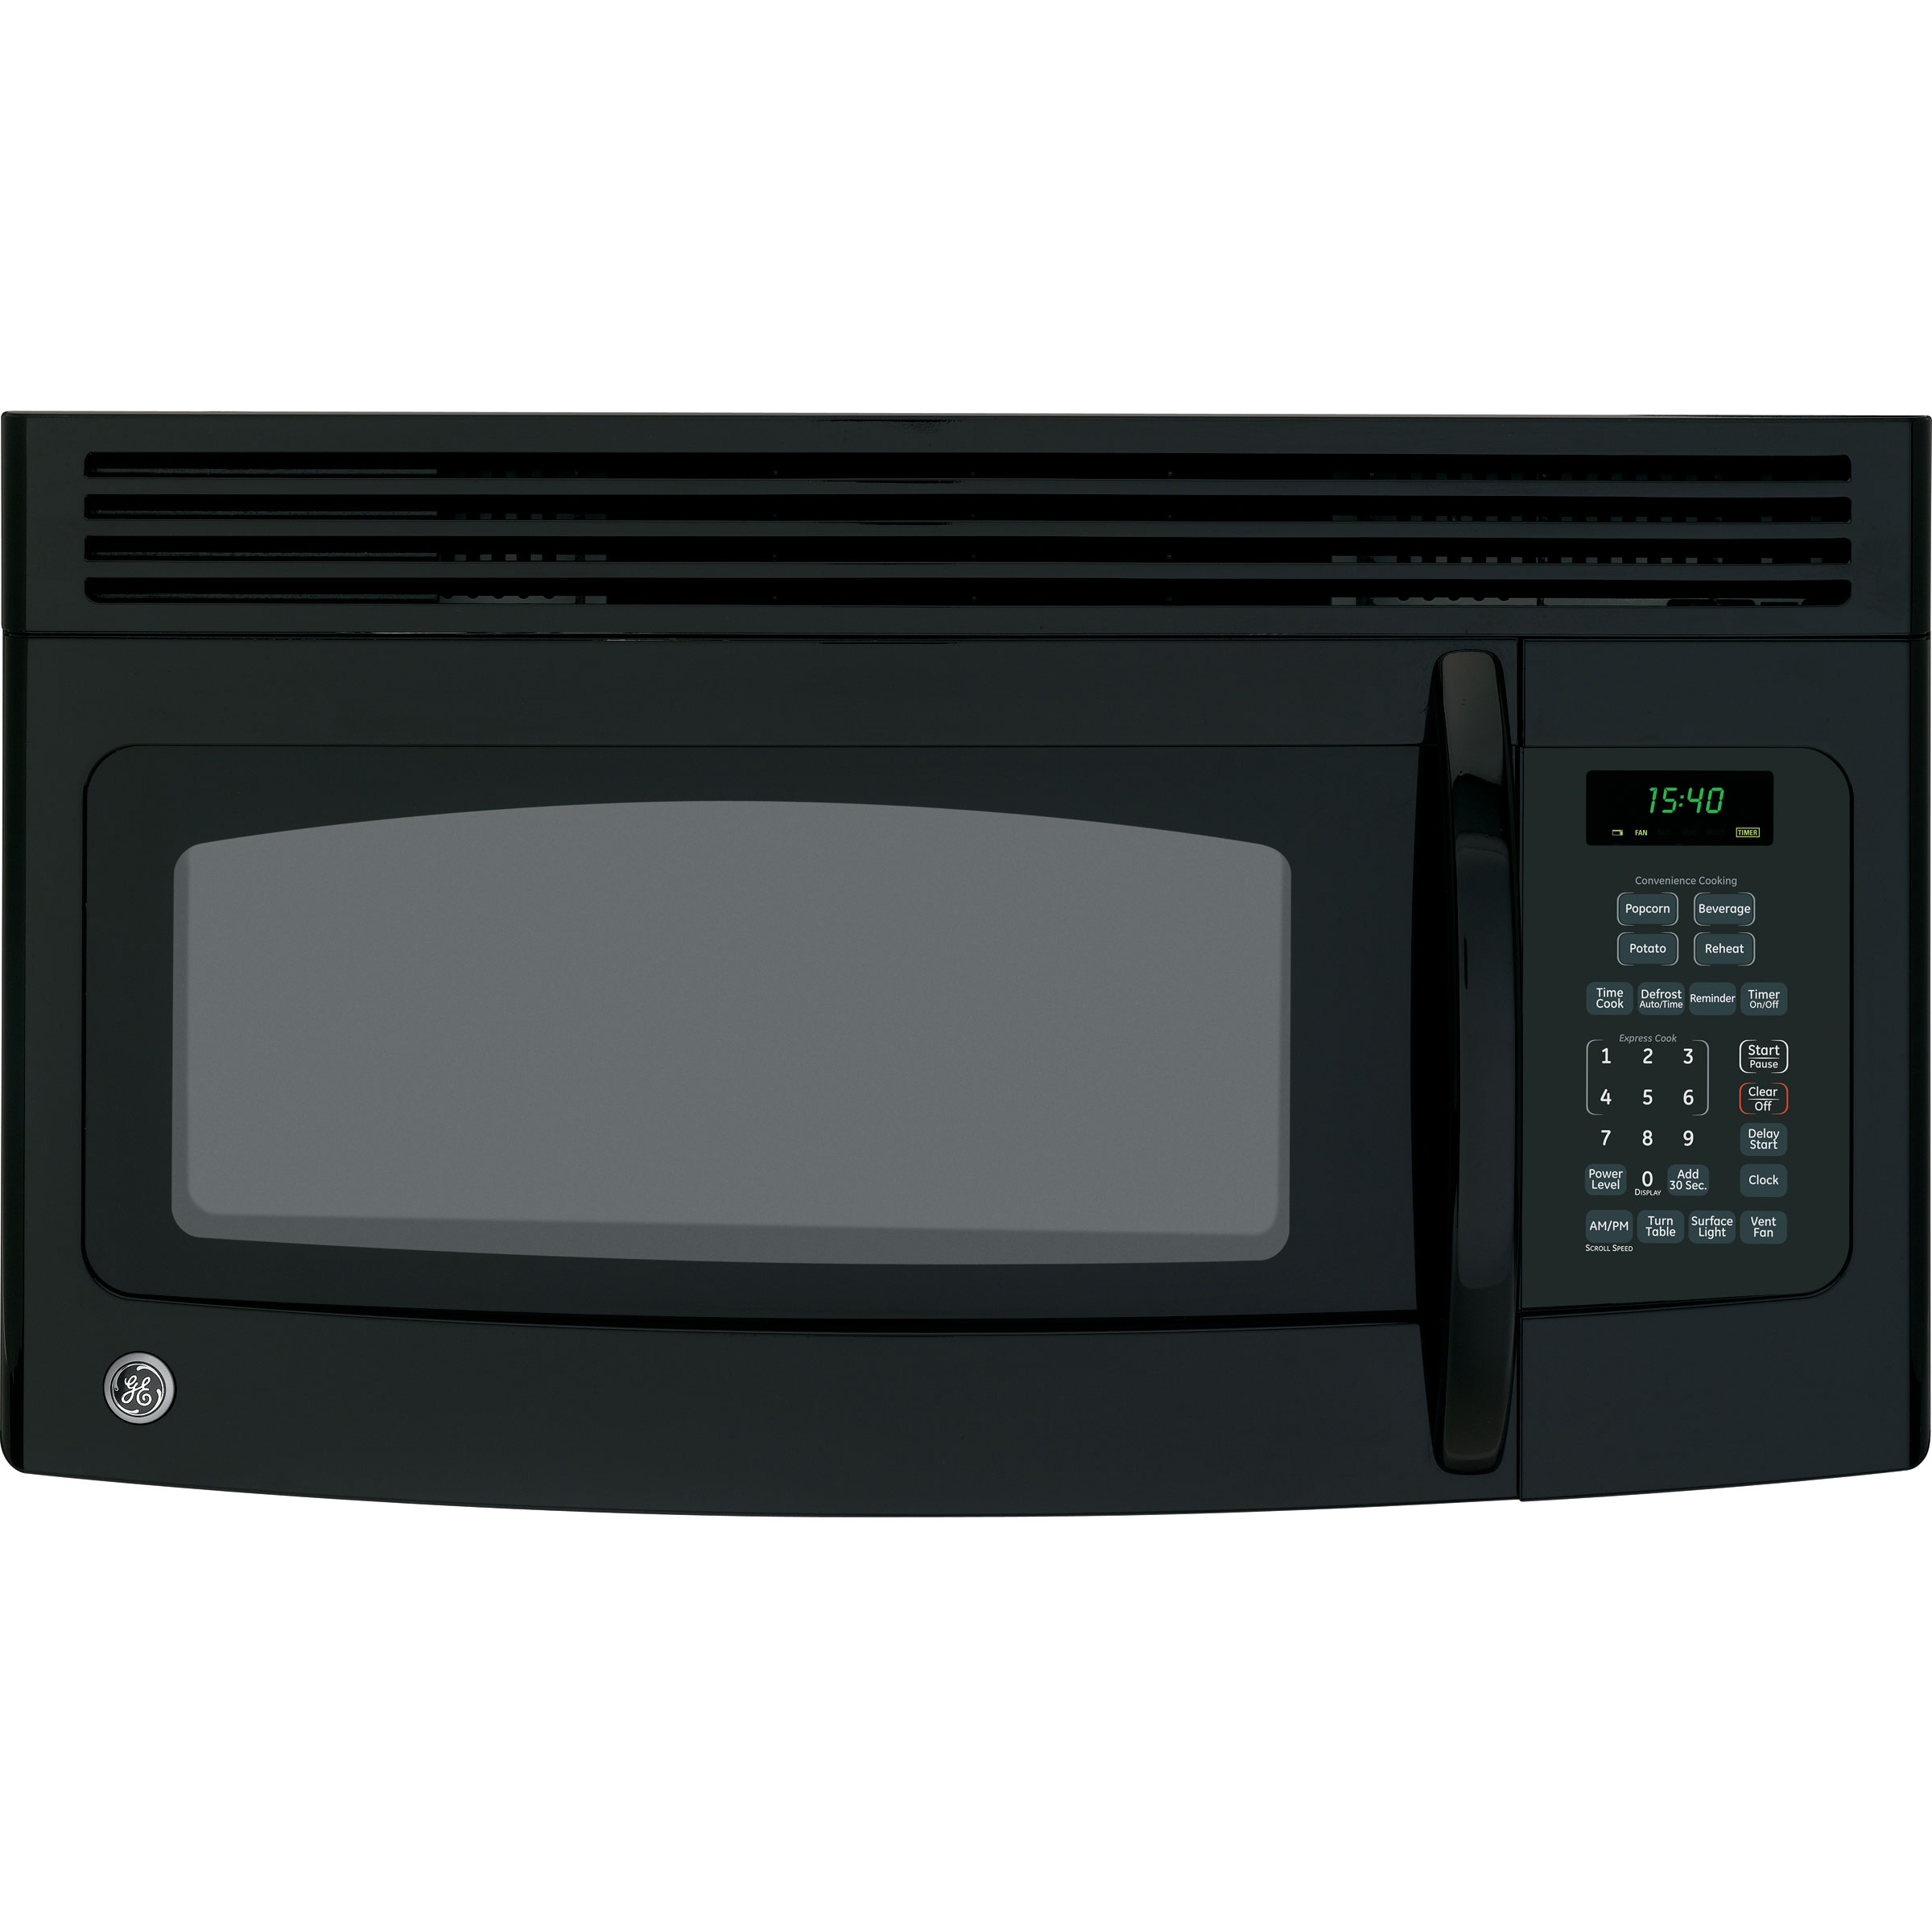 spacemaker jnm1541dmbb microwave oven